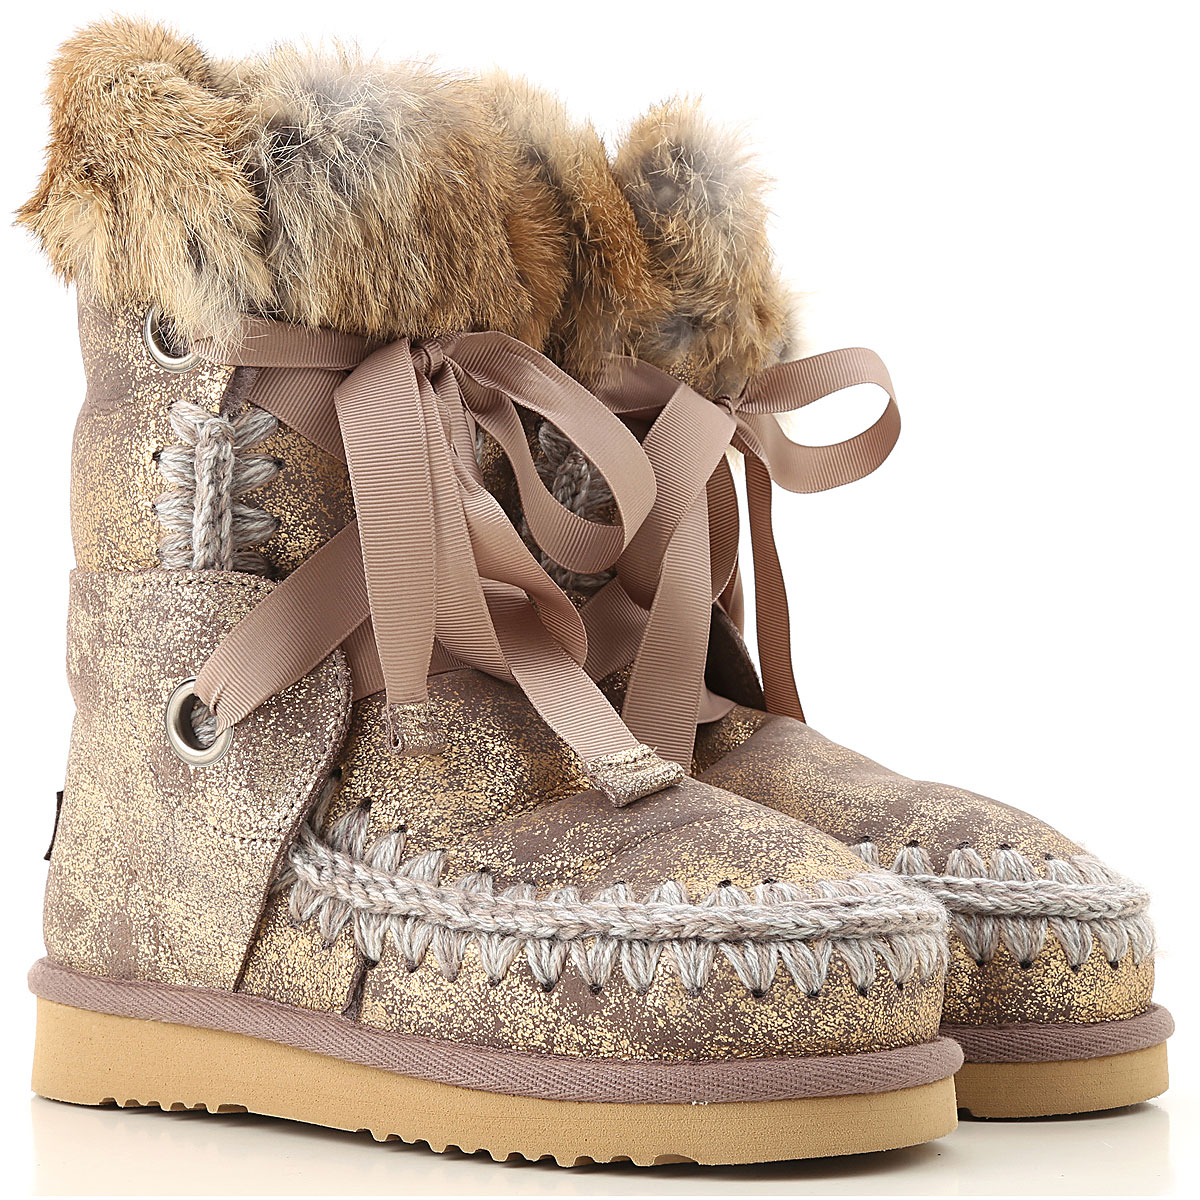 Image of Mou Boots for Women, Booties, Bronze Gold, suede, 2017, EUR 36 - UK 3 - USA 5.5 EUR 37 - UK 4 - USA 6.5 EUR 38 - UK 5 - USA 7.5 EUR 39 - UK 6 - USA 8.5 EUR 40 - UK 7 - USA 9.5